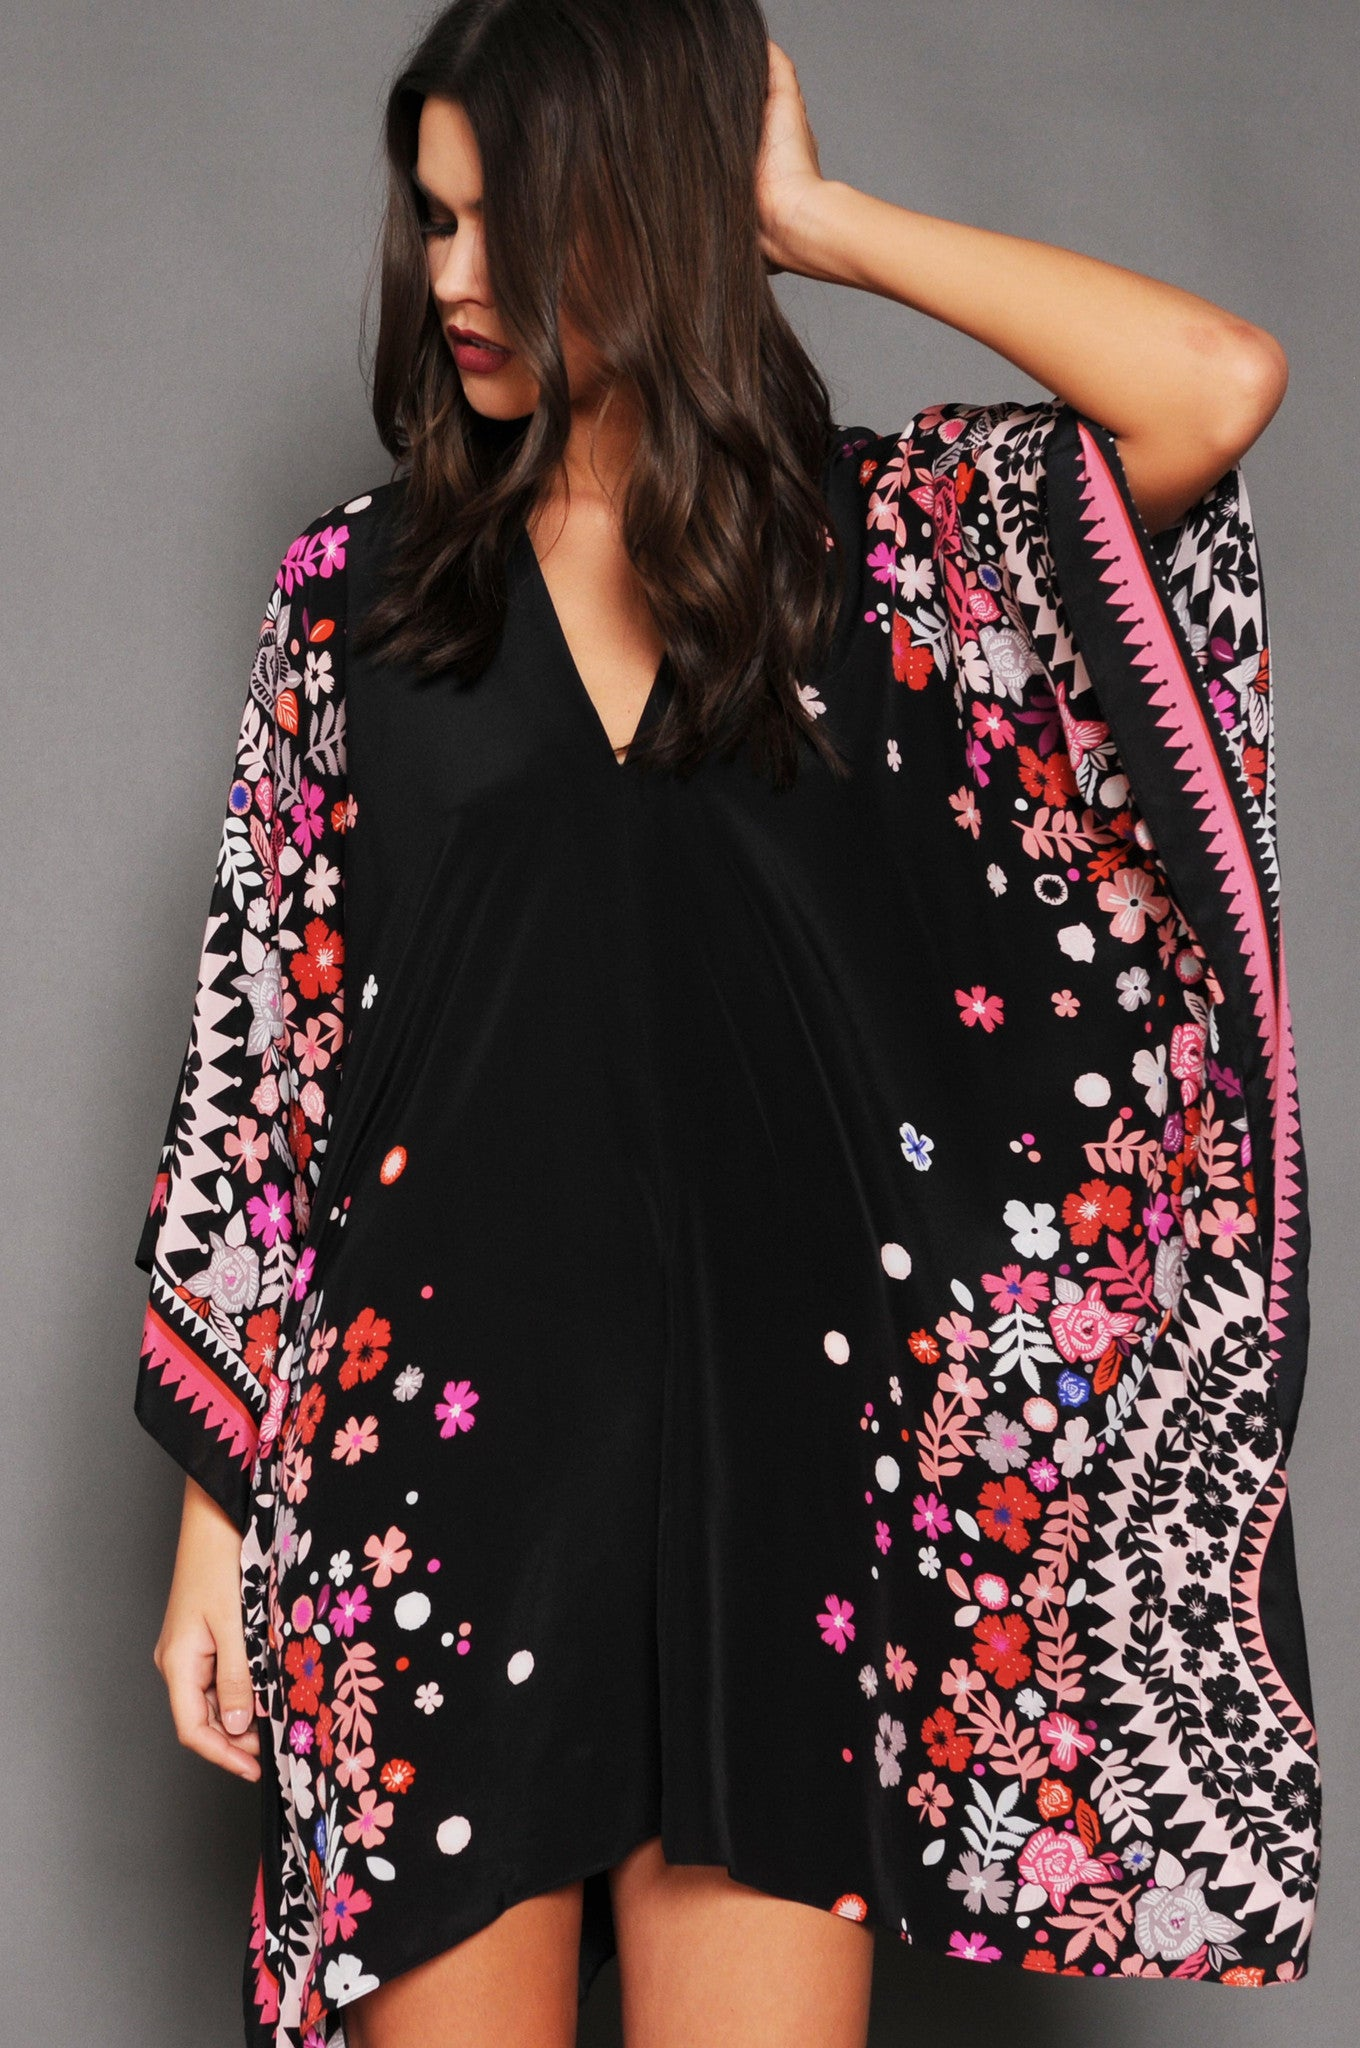 Holland Street's Silk Kaftan Sakura Bloom beachwear